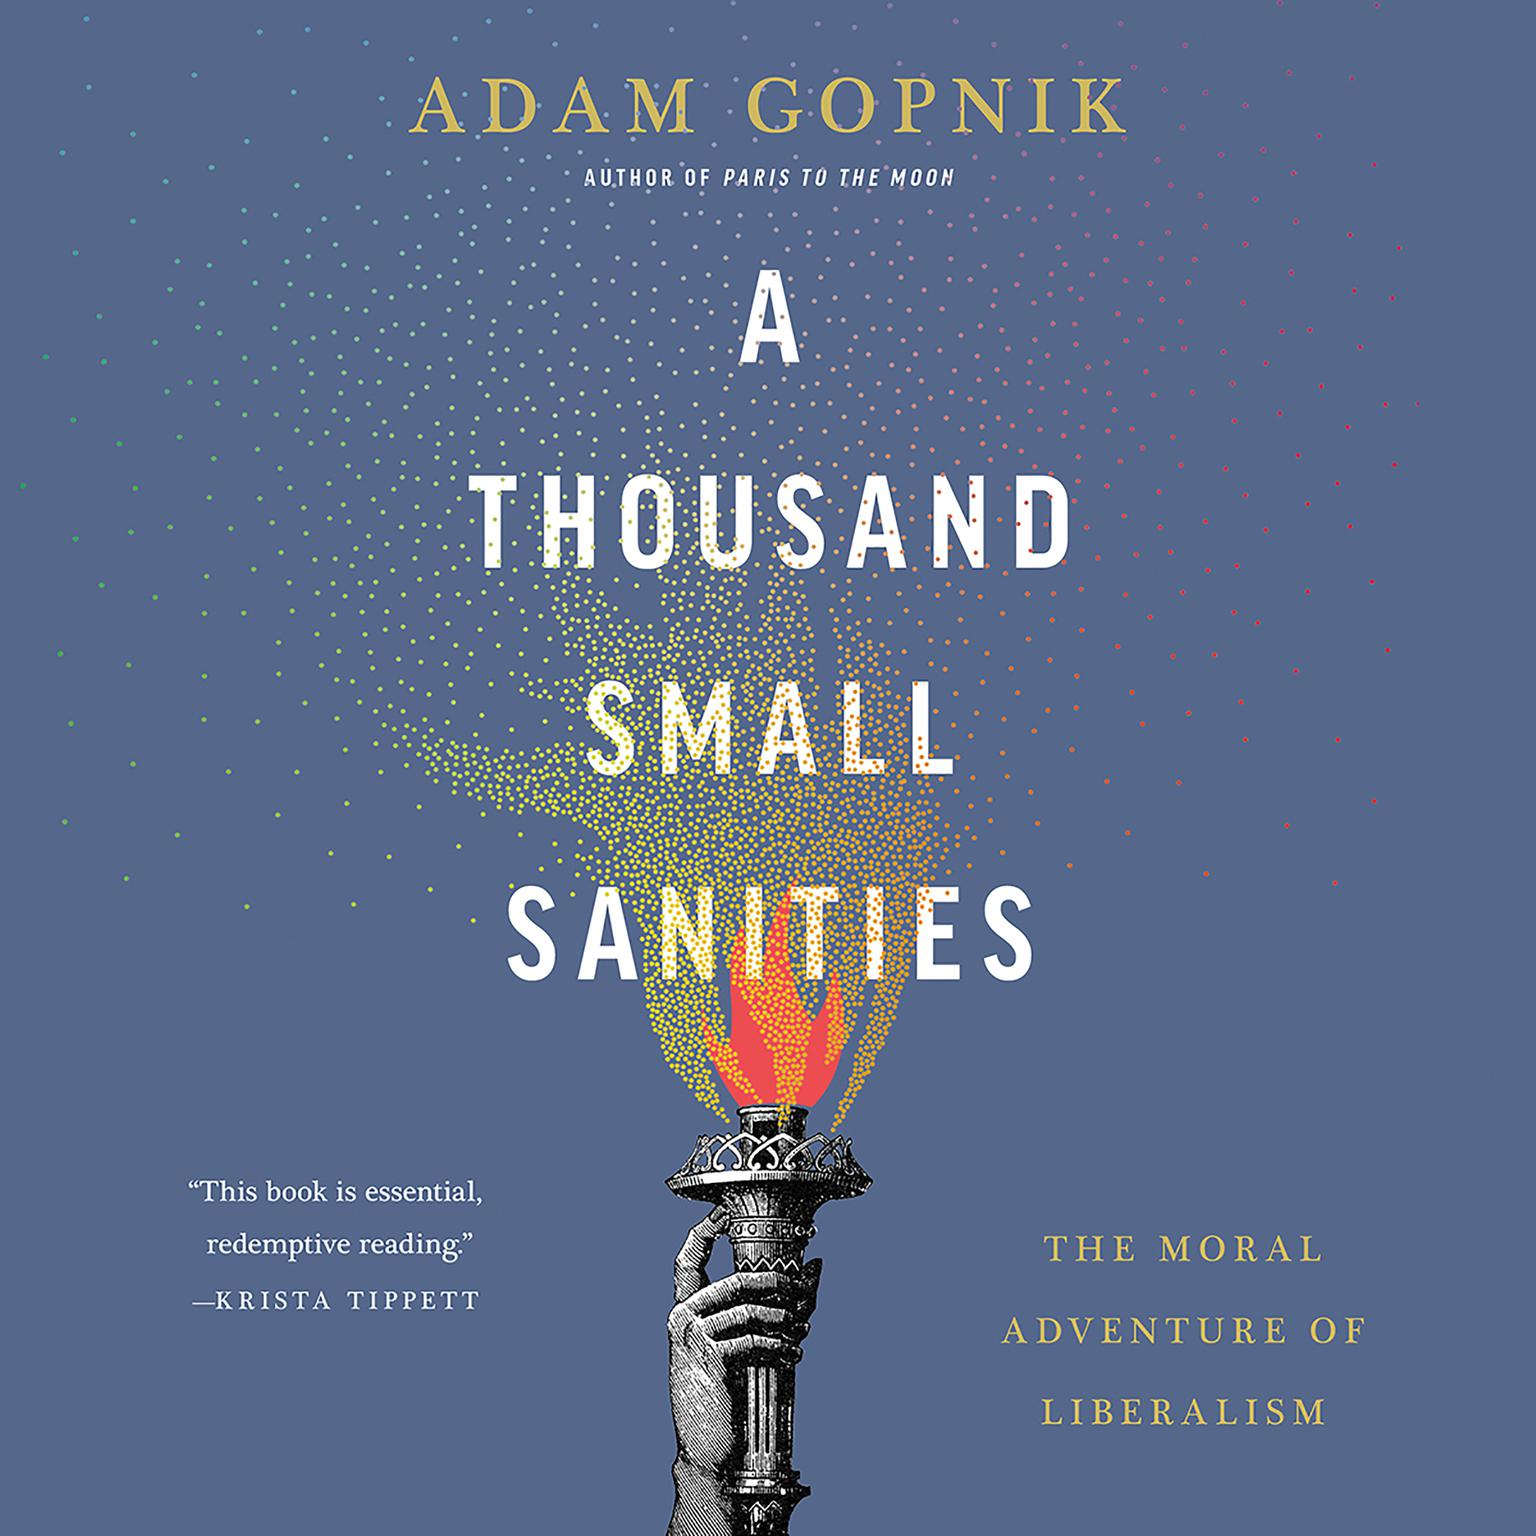 A Thousand Small Sanities: The Moral Adventure of Liberalism Audiobook, by Adam Gopnik